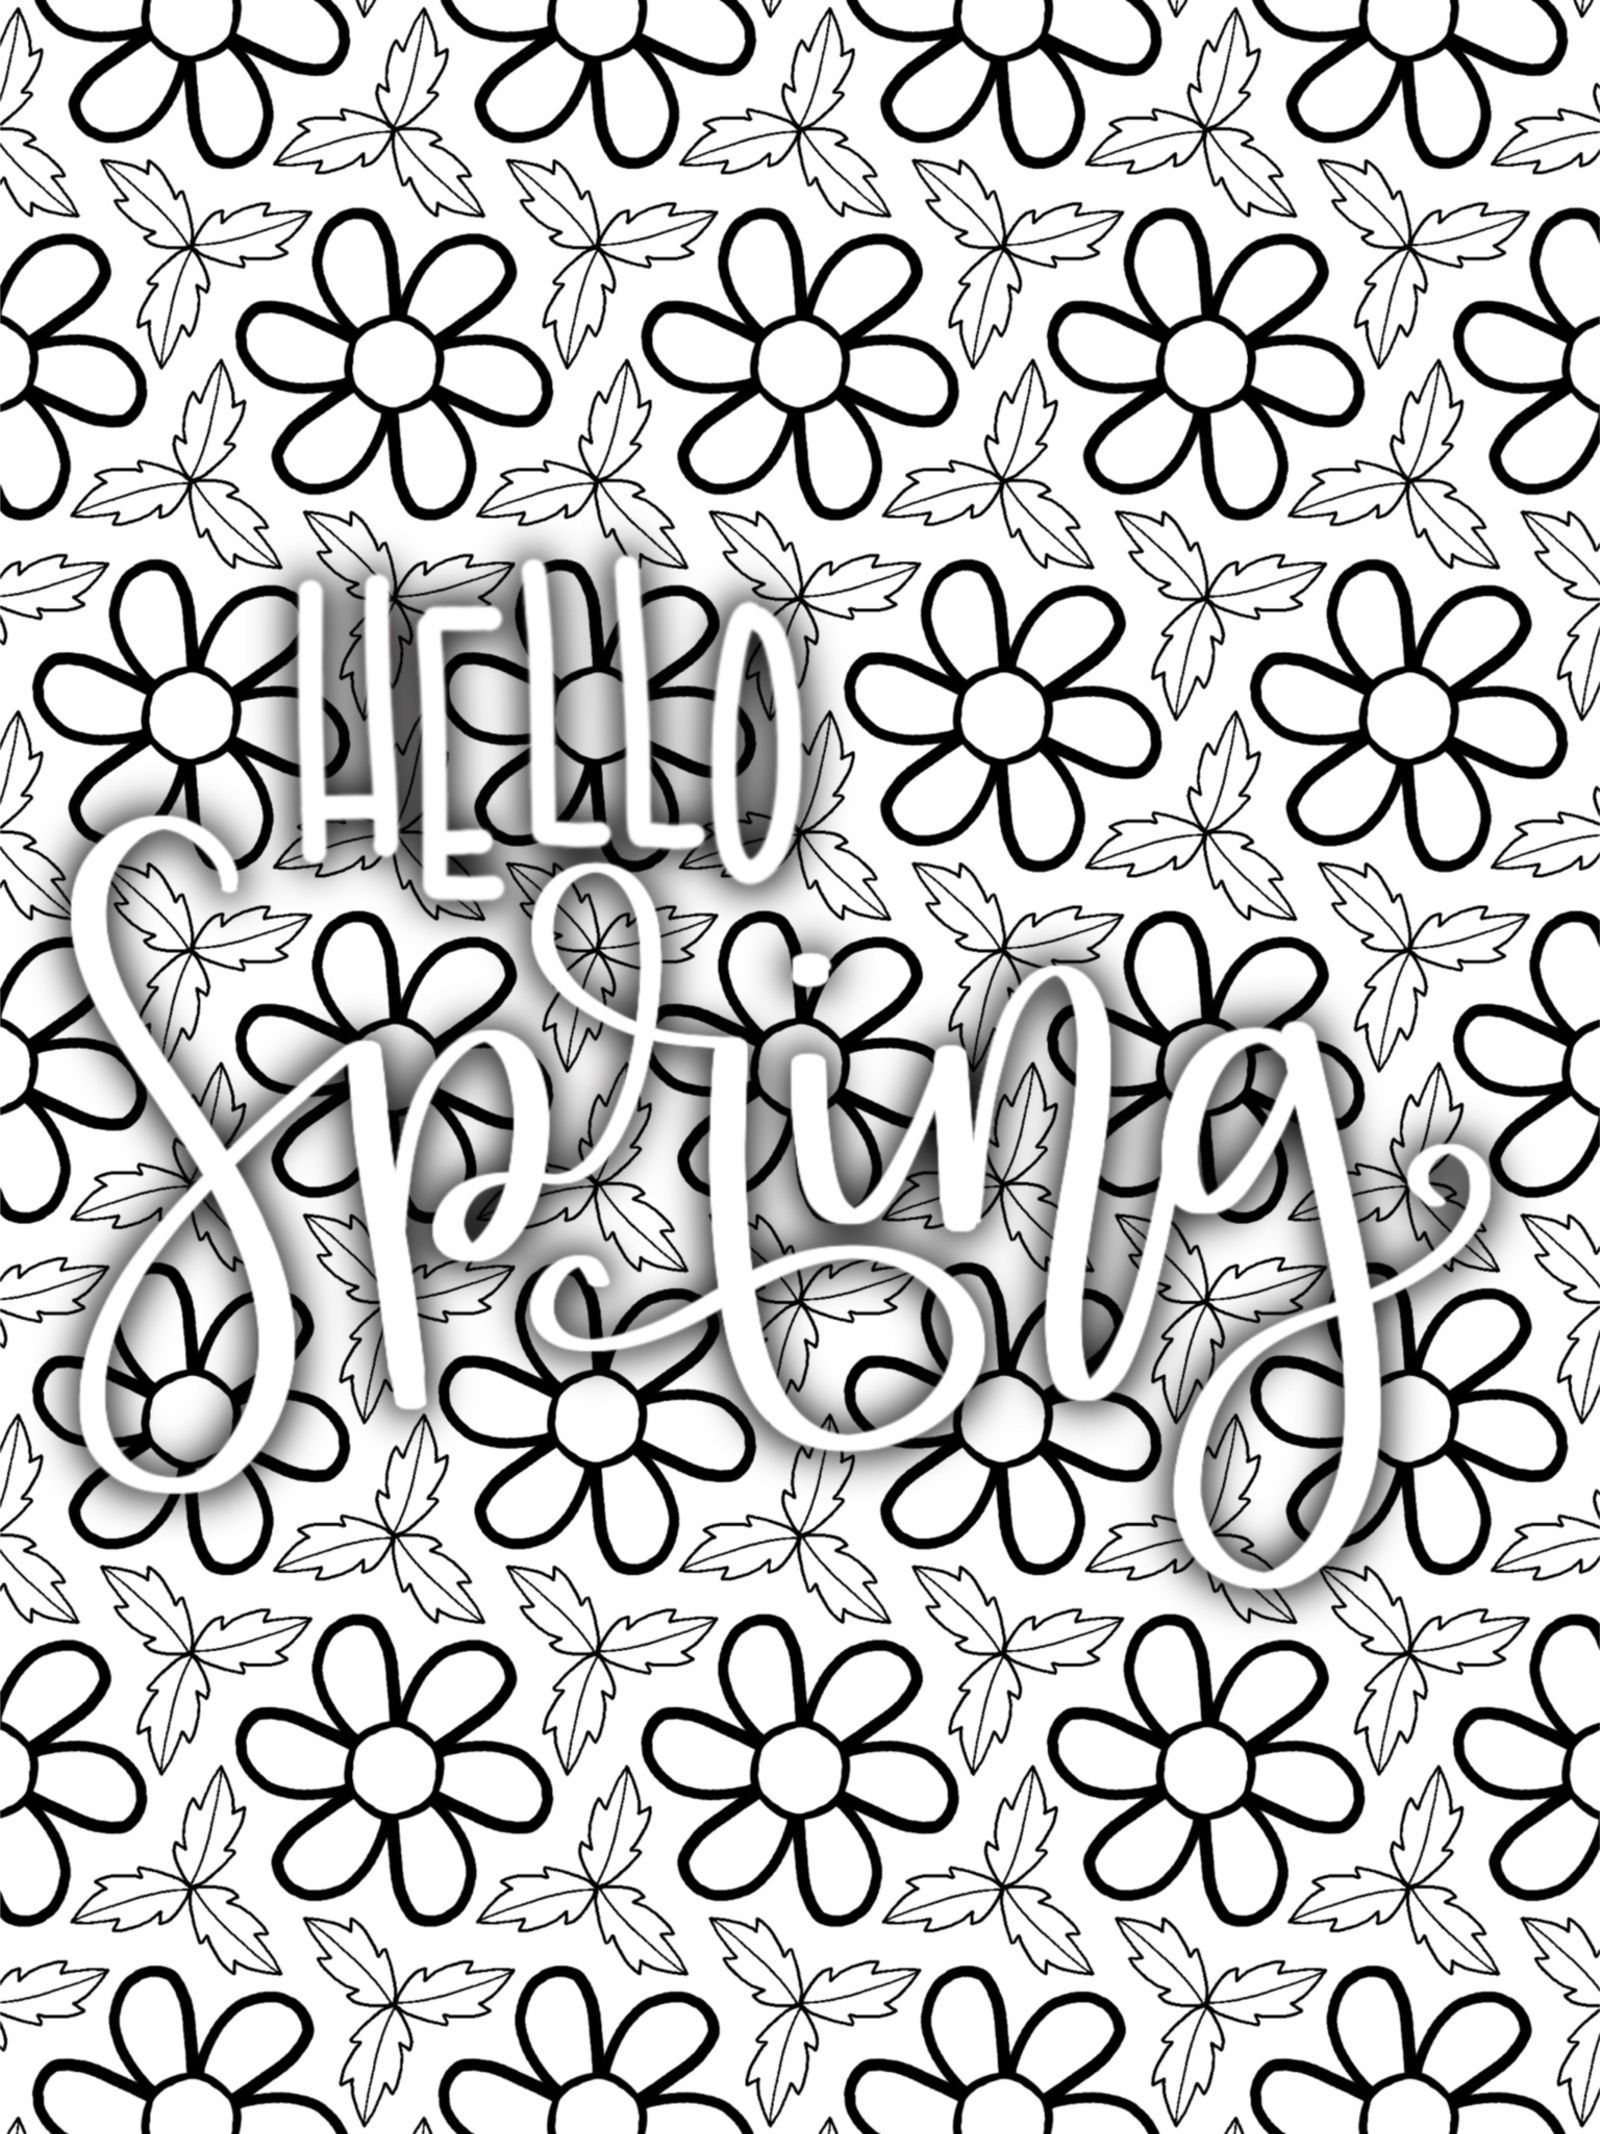 Drawings Image By Timmie Gonzales Gault Flower Pattern Drawing